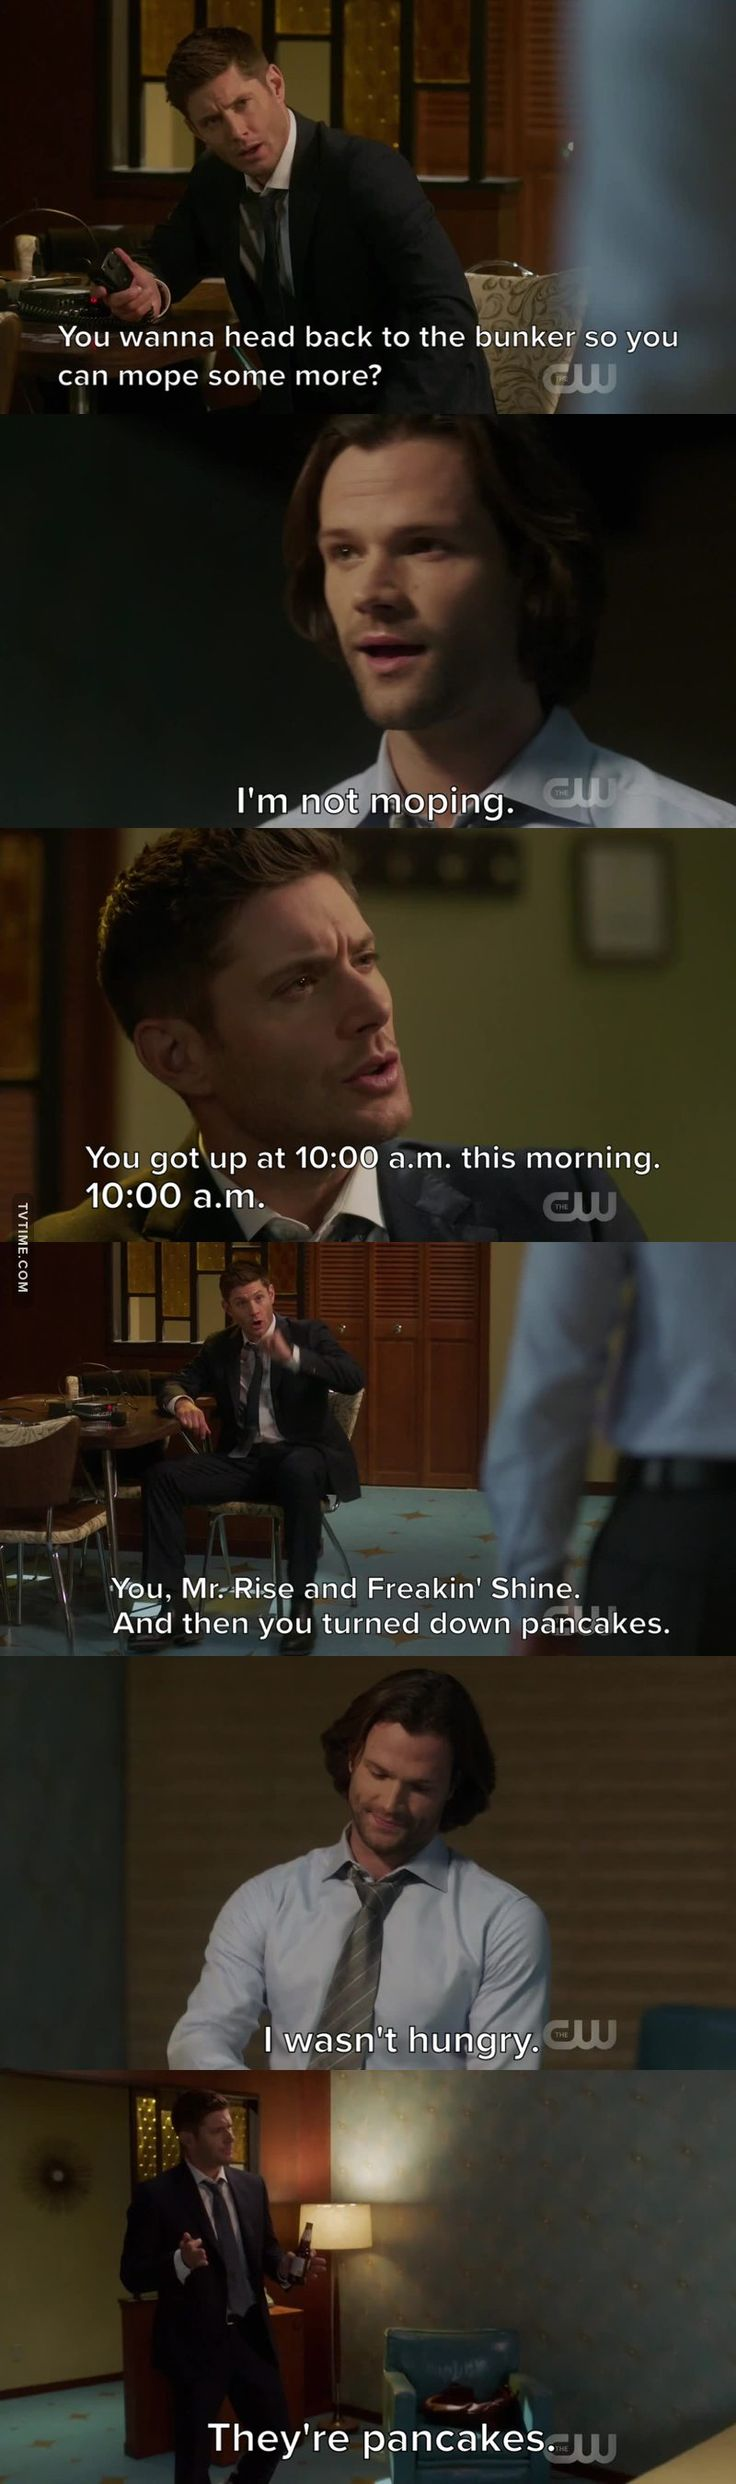 'Sammy don't mope 13x11' Okay but really the first minute of this episode, I and so many others related so much to Sammy's struggle. The endless nights becoming mornings without sleep, the indifference at your favorite things, the loss of that spring in your step, the desire to run back to your home or some sort of safe haven, and on top of it all, the denial to those around you that anything is wrong.  Thank you, Jared, for portraying that so relatably- likely with your own experience- and…